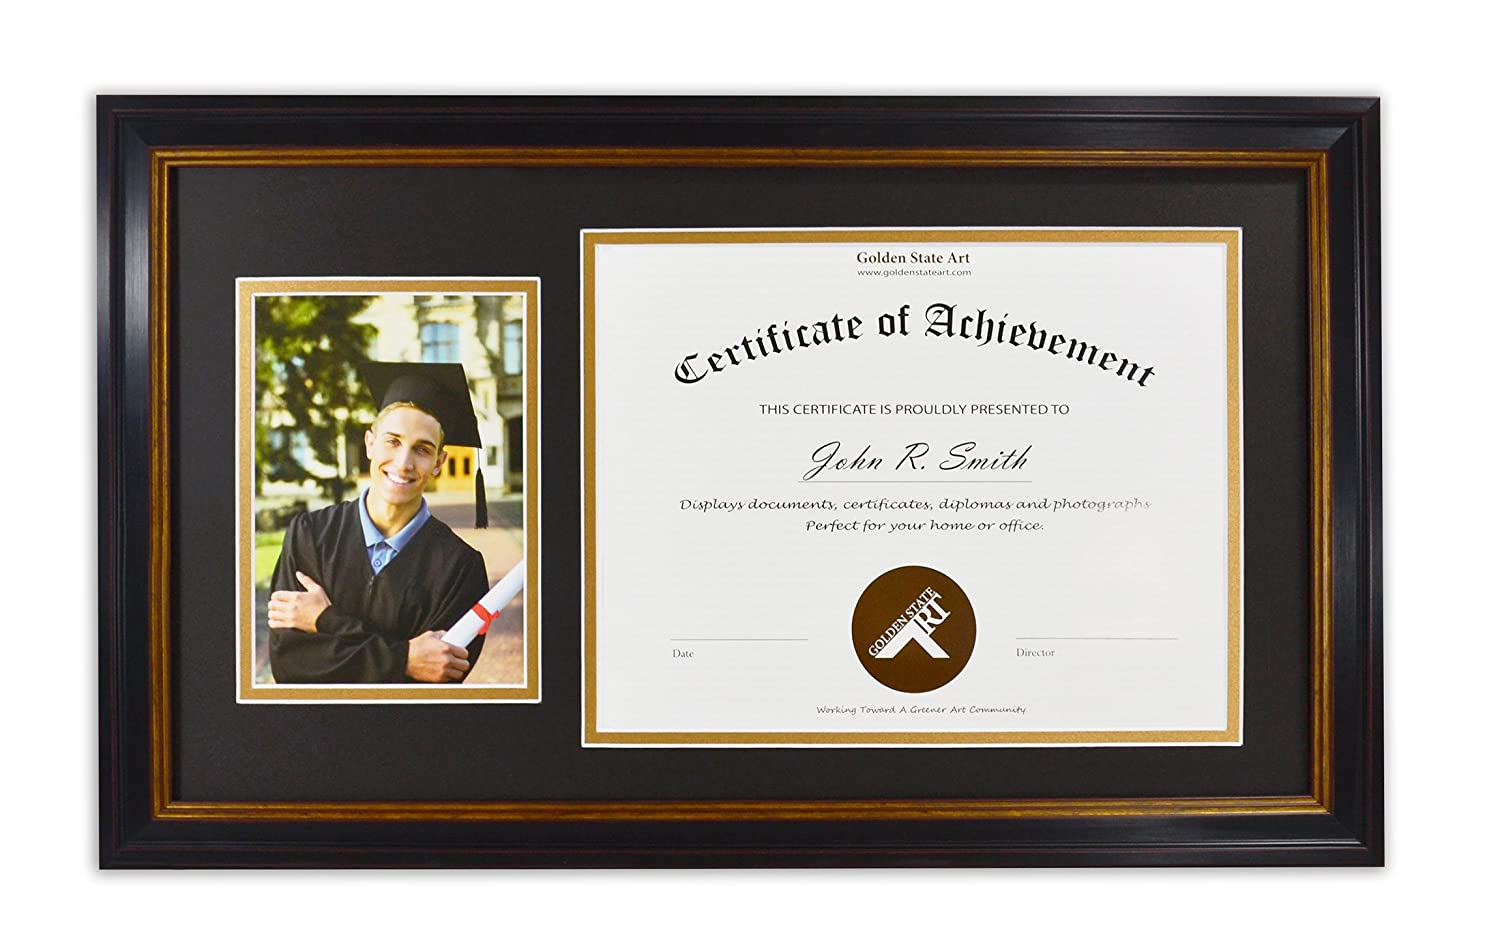 Golden State Art, 11x19.5 Frame for 8.5x11 Diploma/Certificate & 5X7 Picture, Black Gold & Burgundy Color. Includes Black Over Gold Double Mat and Real Glass GSA-G-GC069-1462-BX-11195-02 SF0265